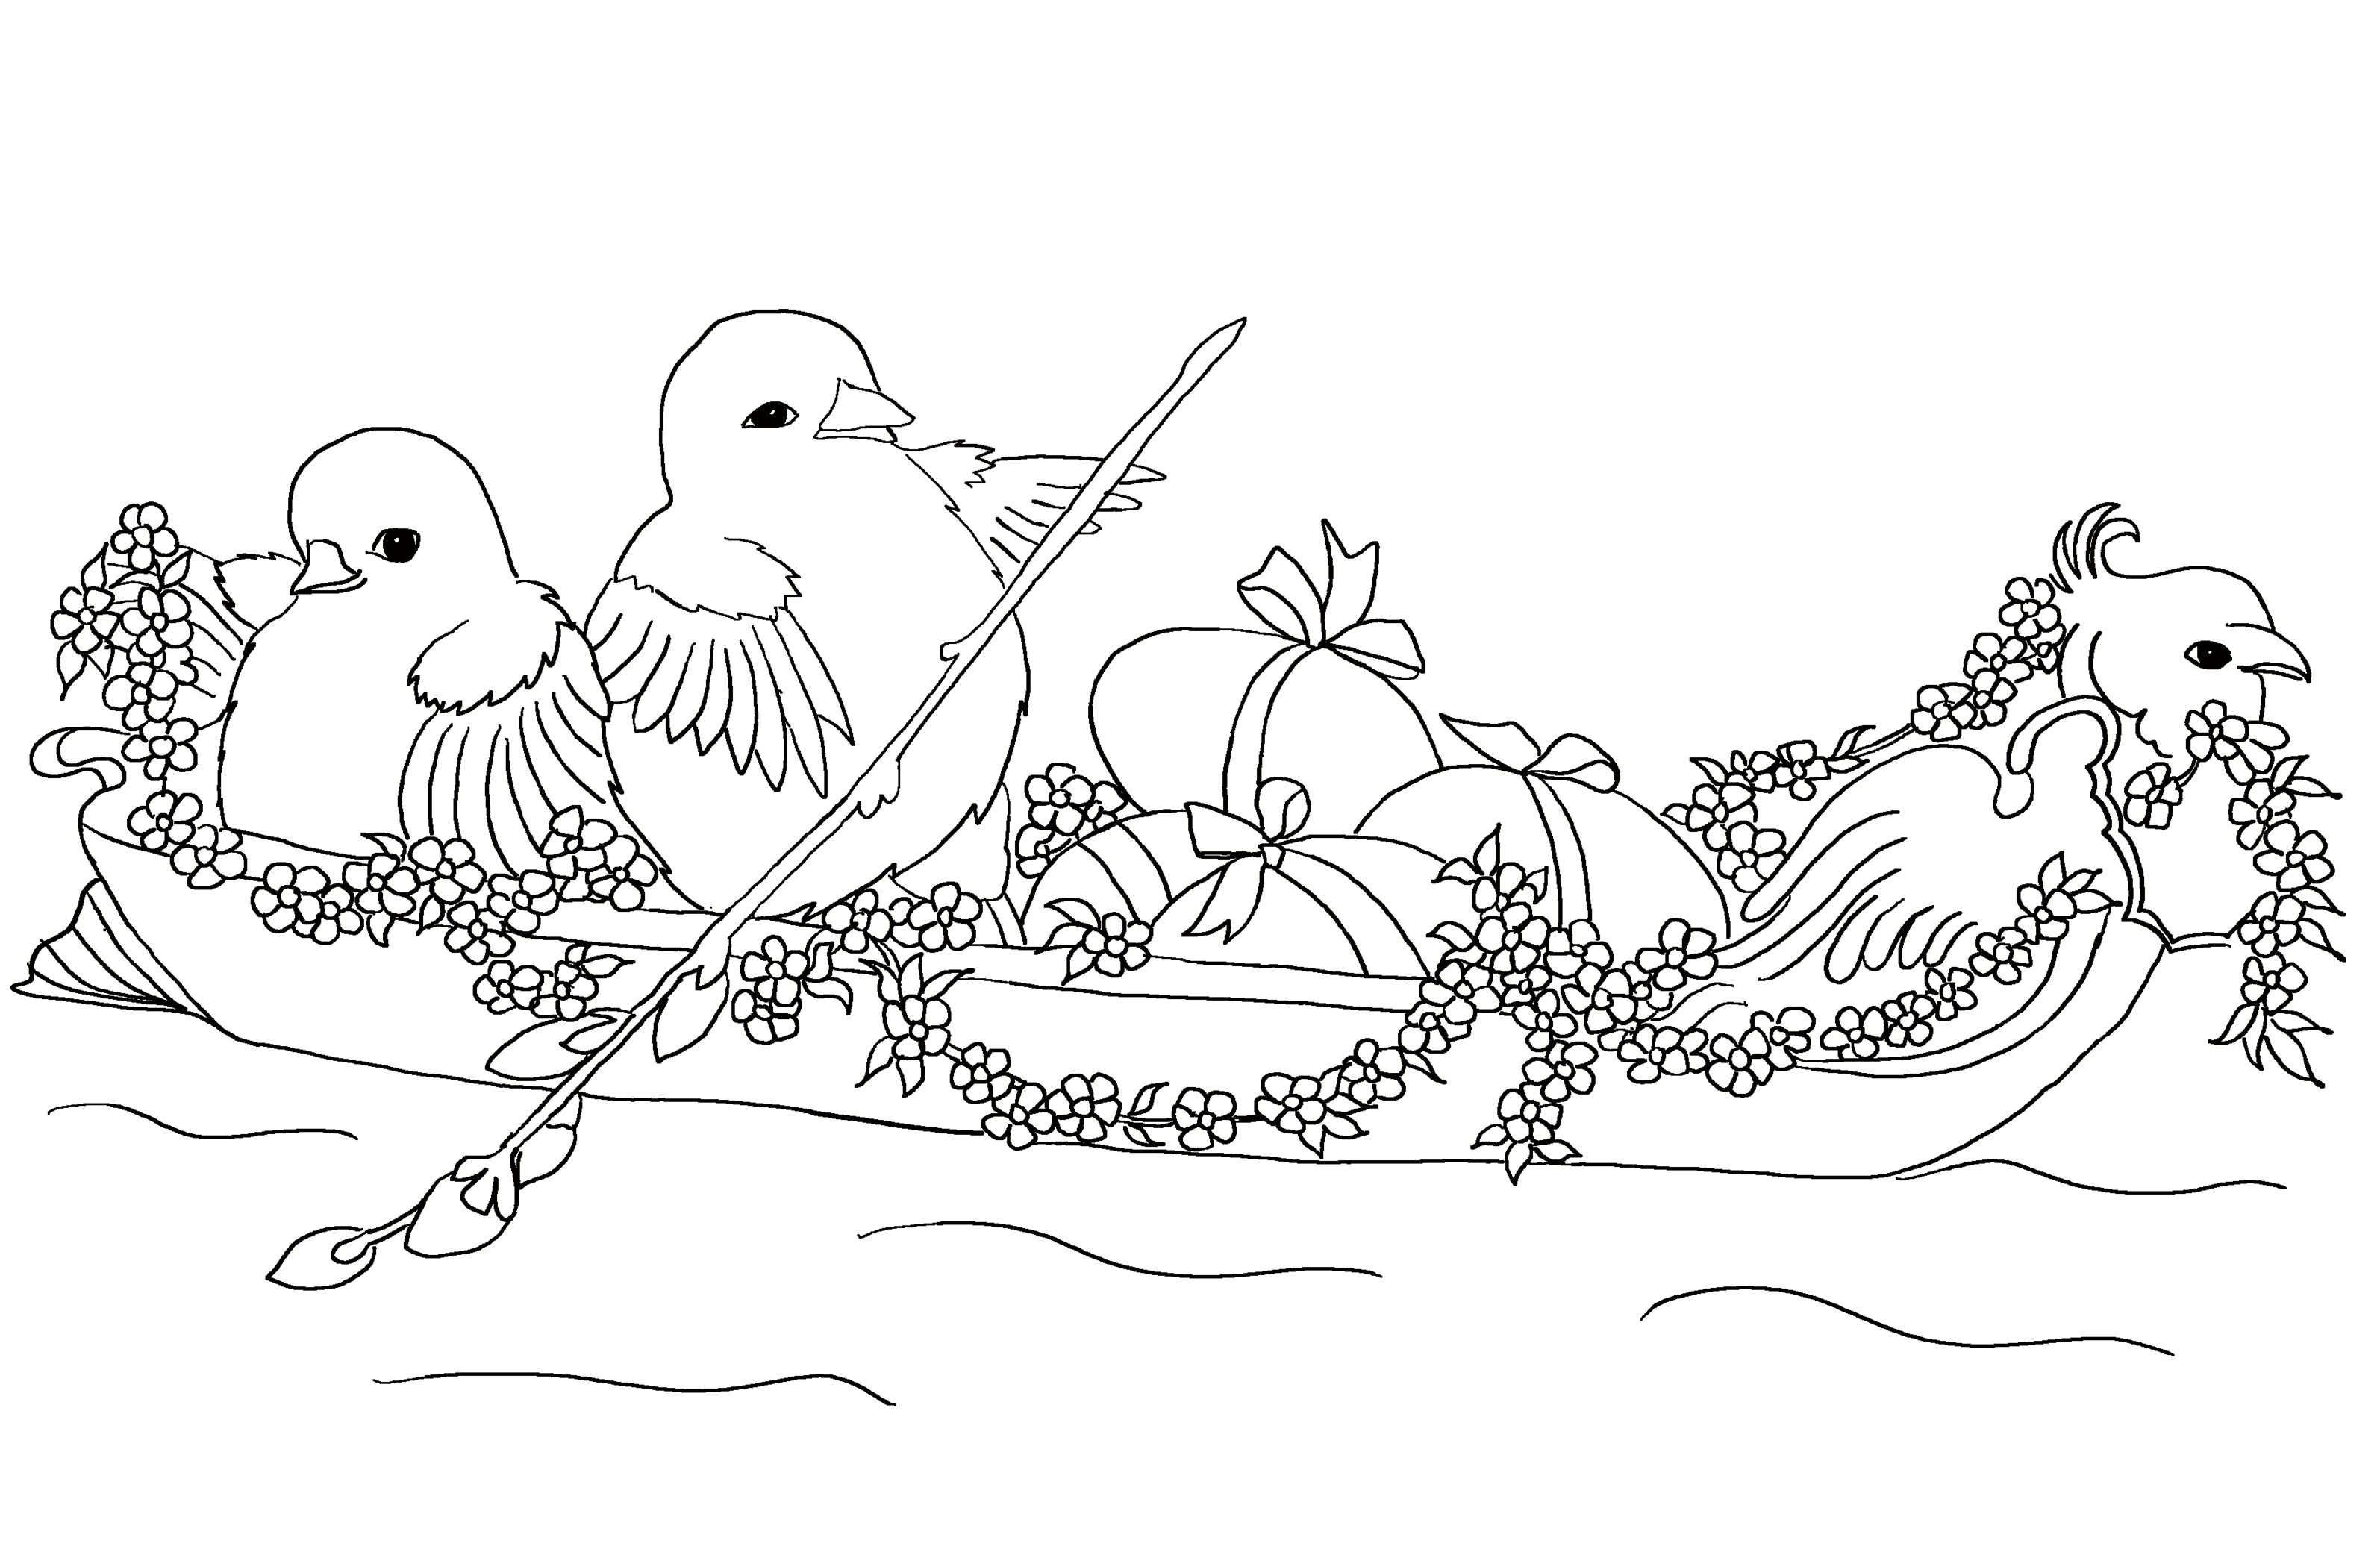 Easter coloring page for kids with two chickens in a gondola.